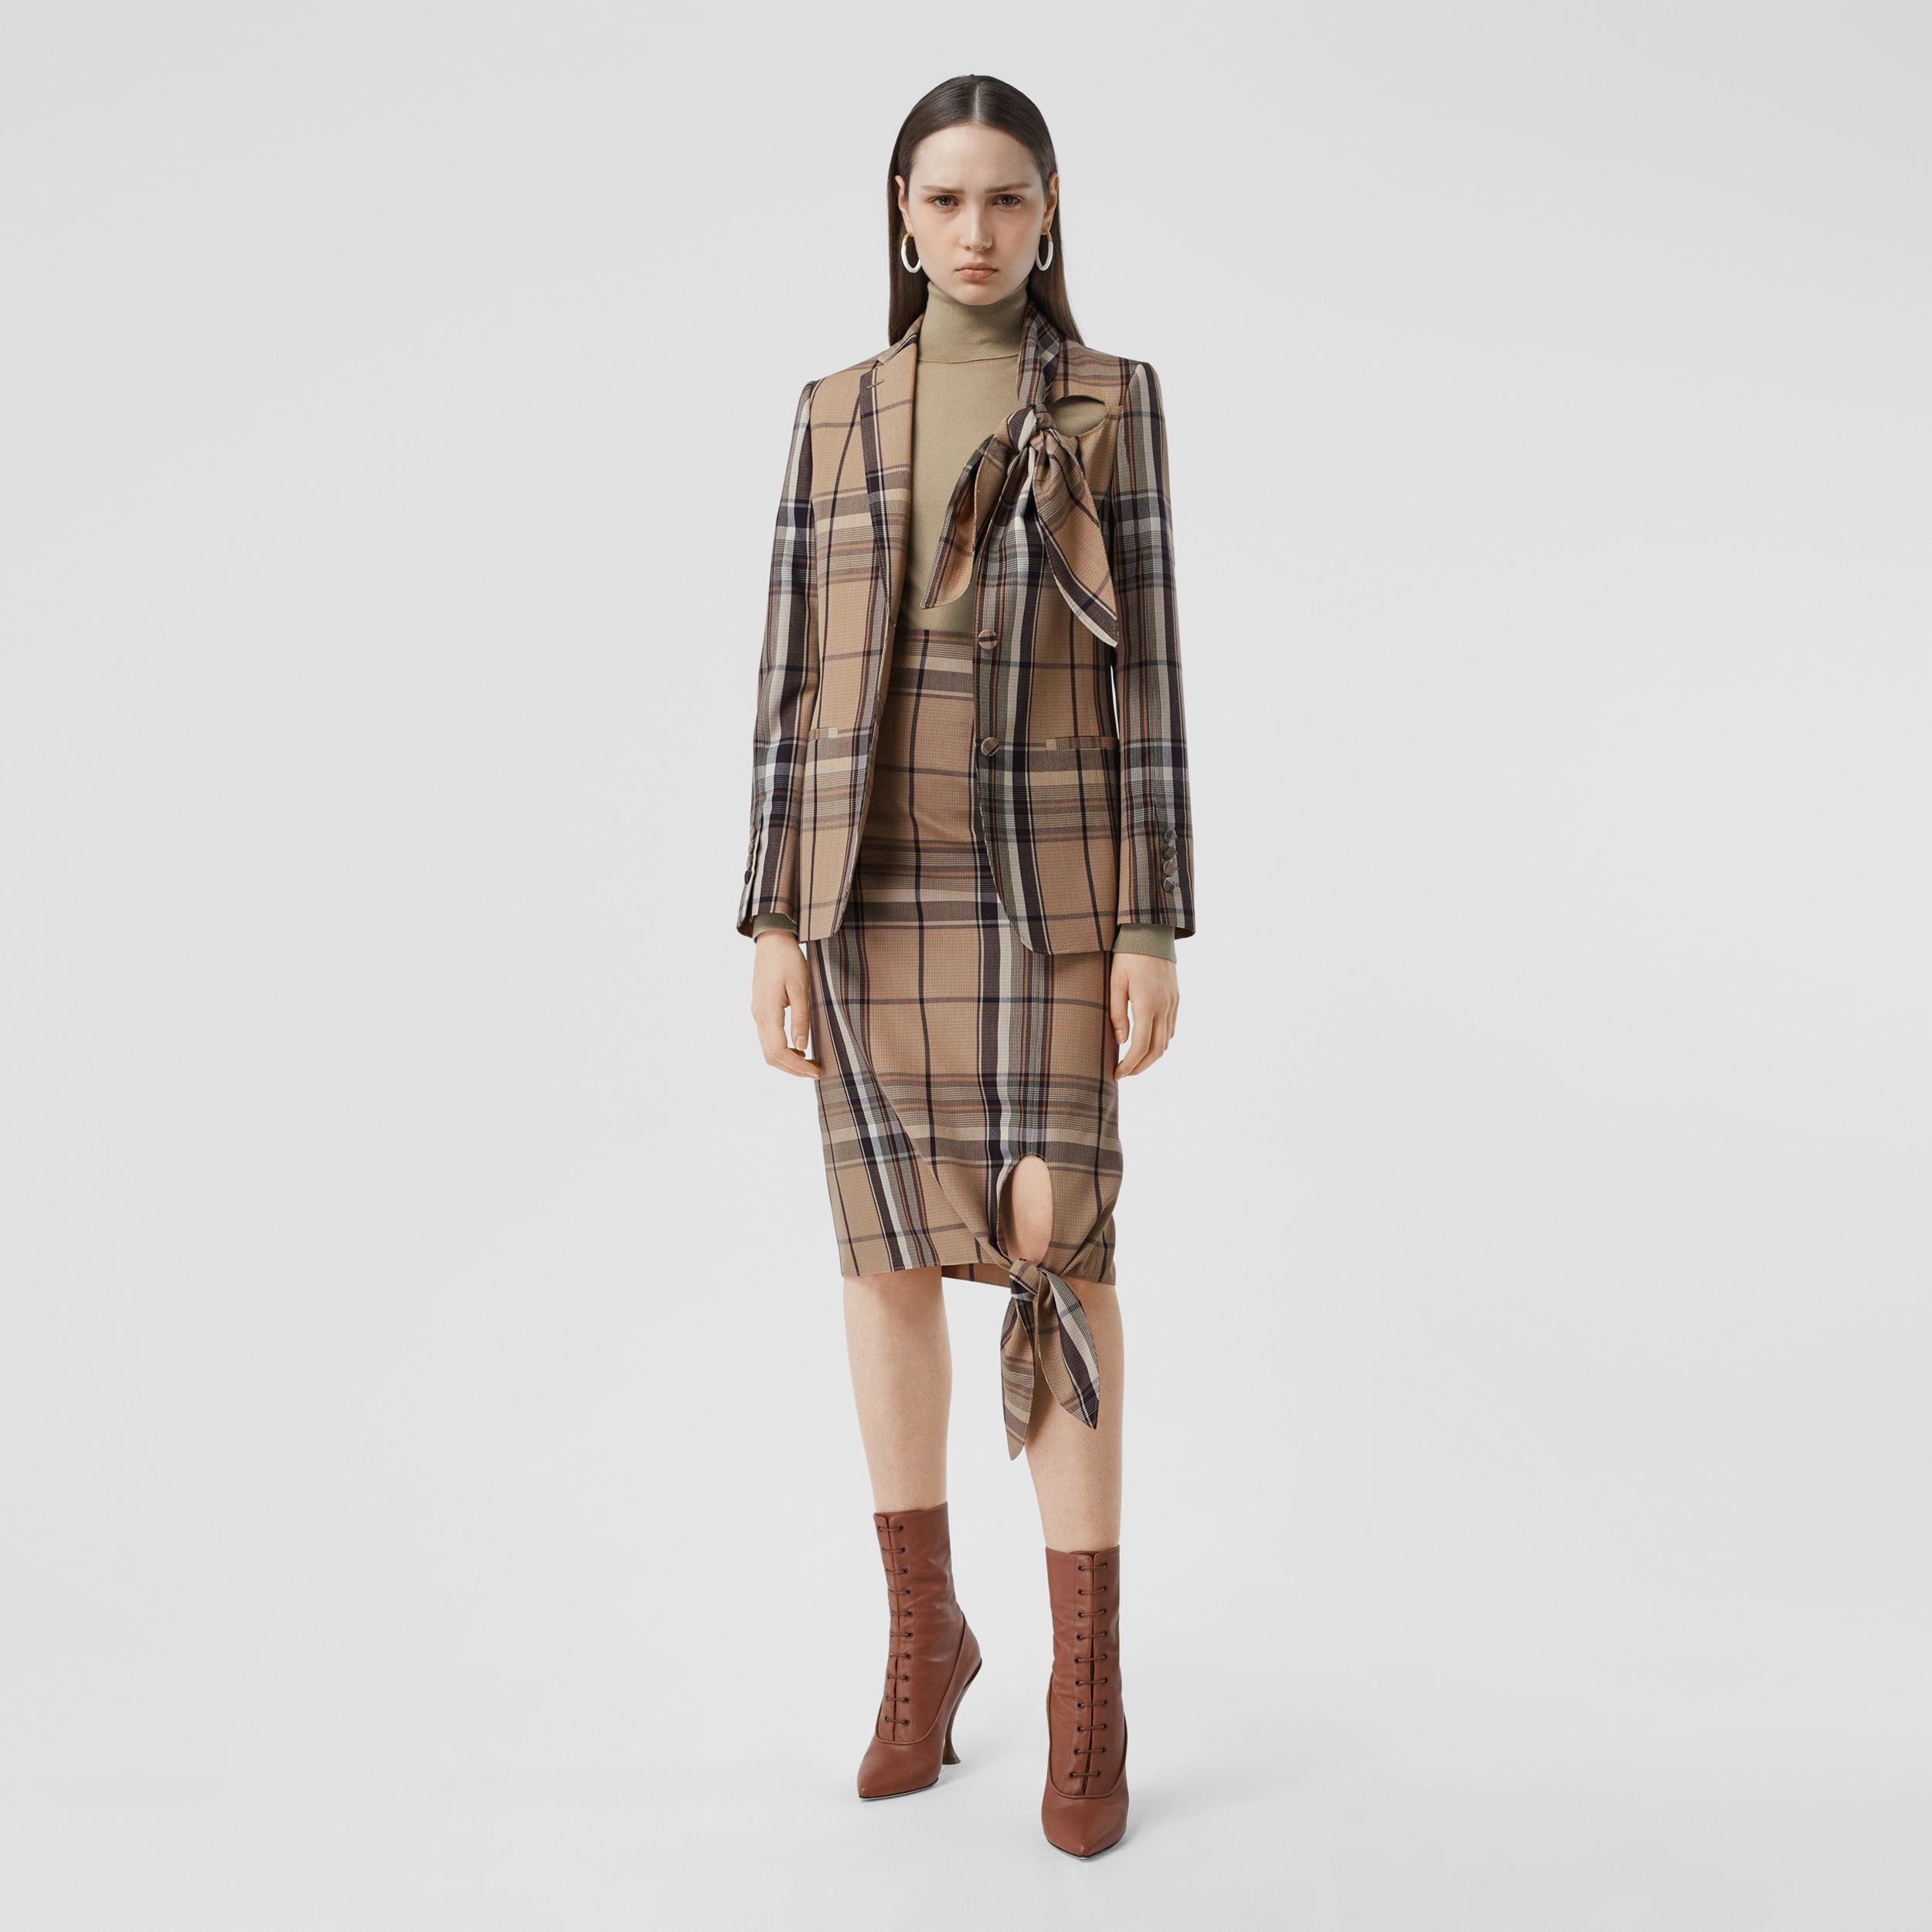 Knot Detail Check Wool Tailored Jacket - Women | Burberry - 1